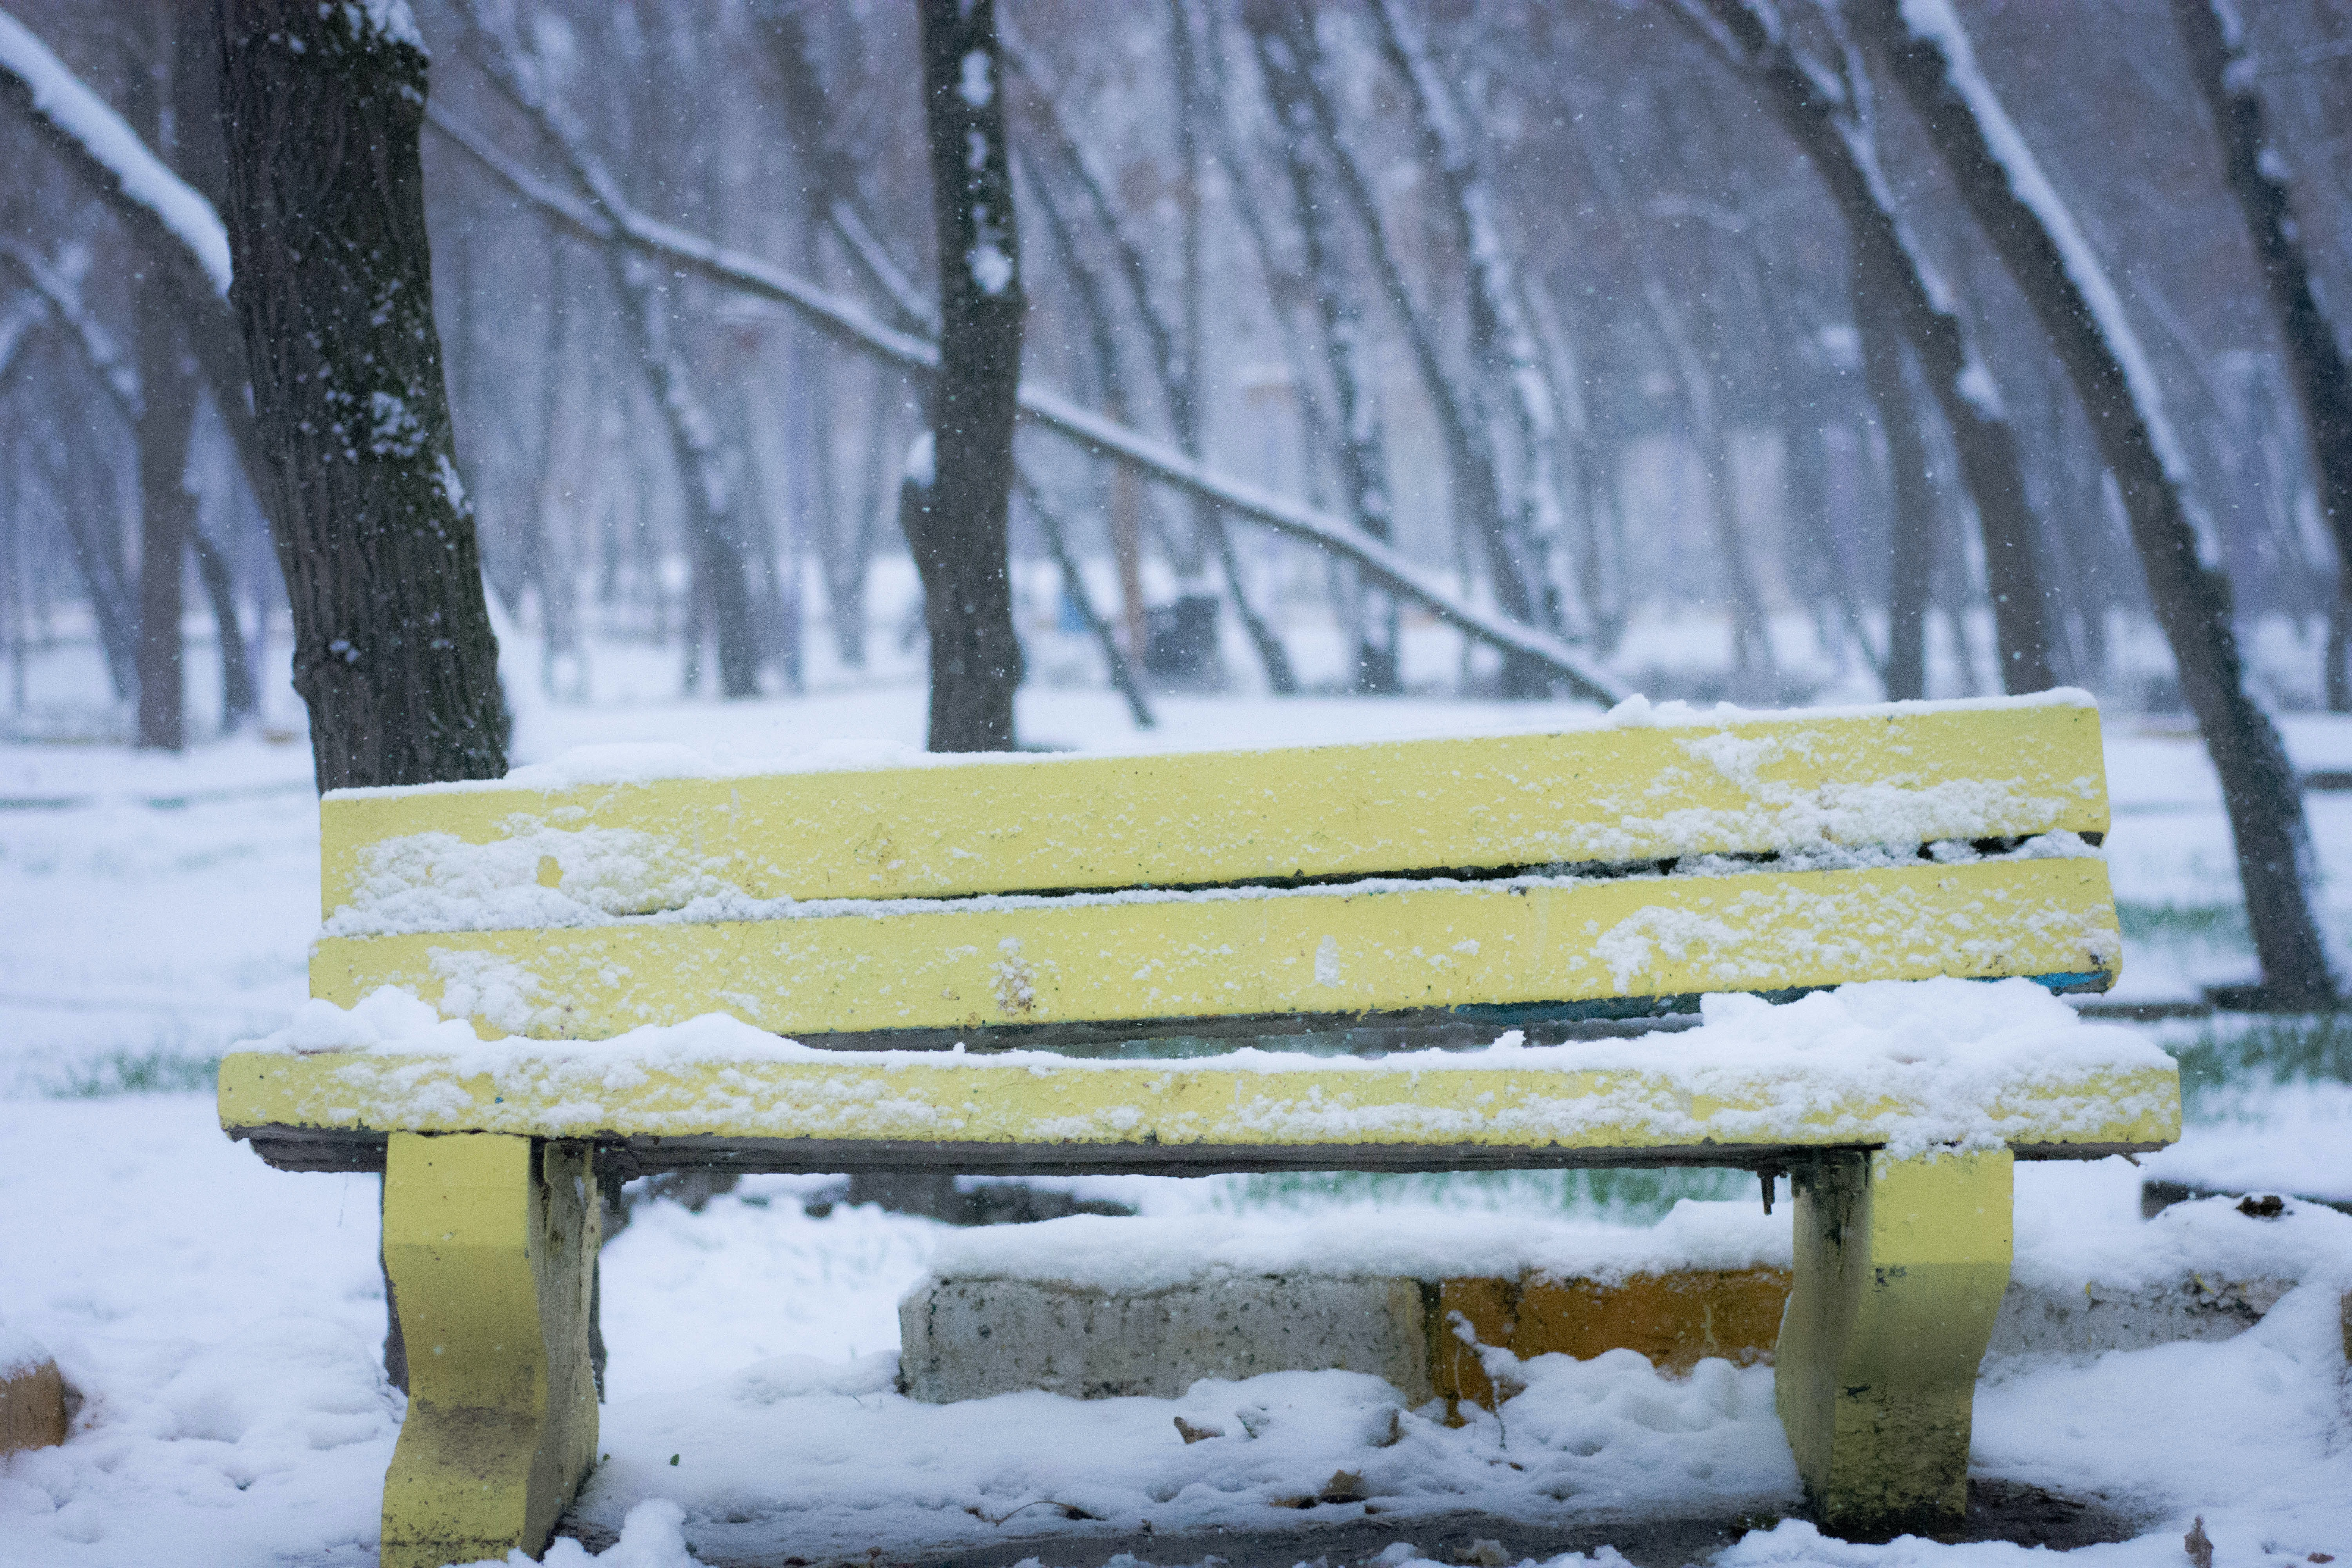 A crooked, decaying yellow bench at Quchan in Iran